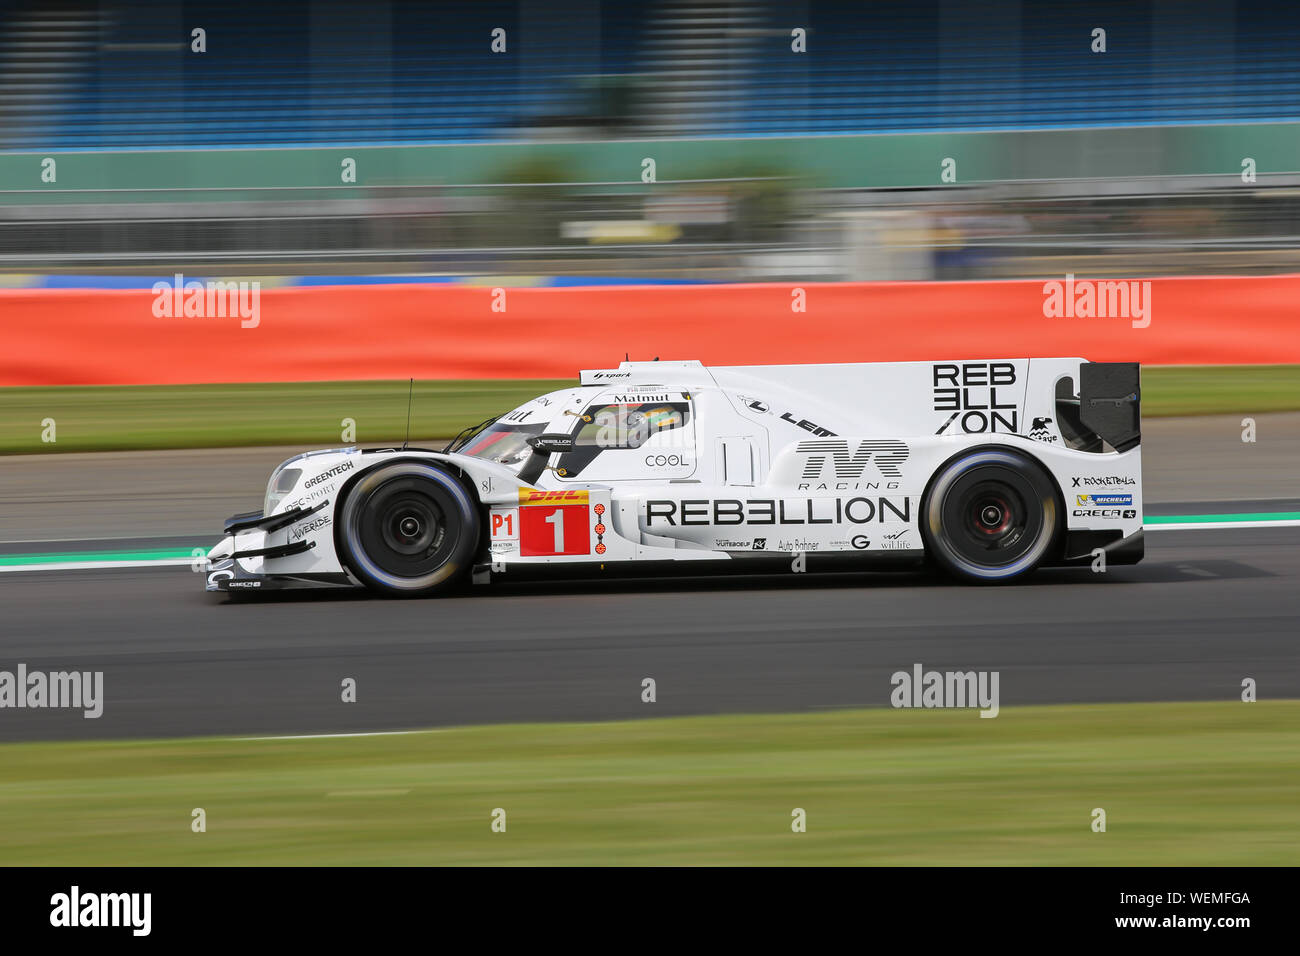 The #1 Rebellion Racing Rebellion R13-Gibson of Bruno Senna, Gustavo Menezes and Norman Nato during practice for the FIA World Endurance Championship Stock Photo